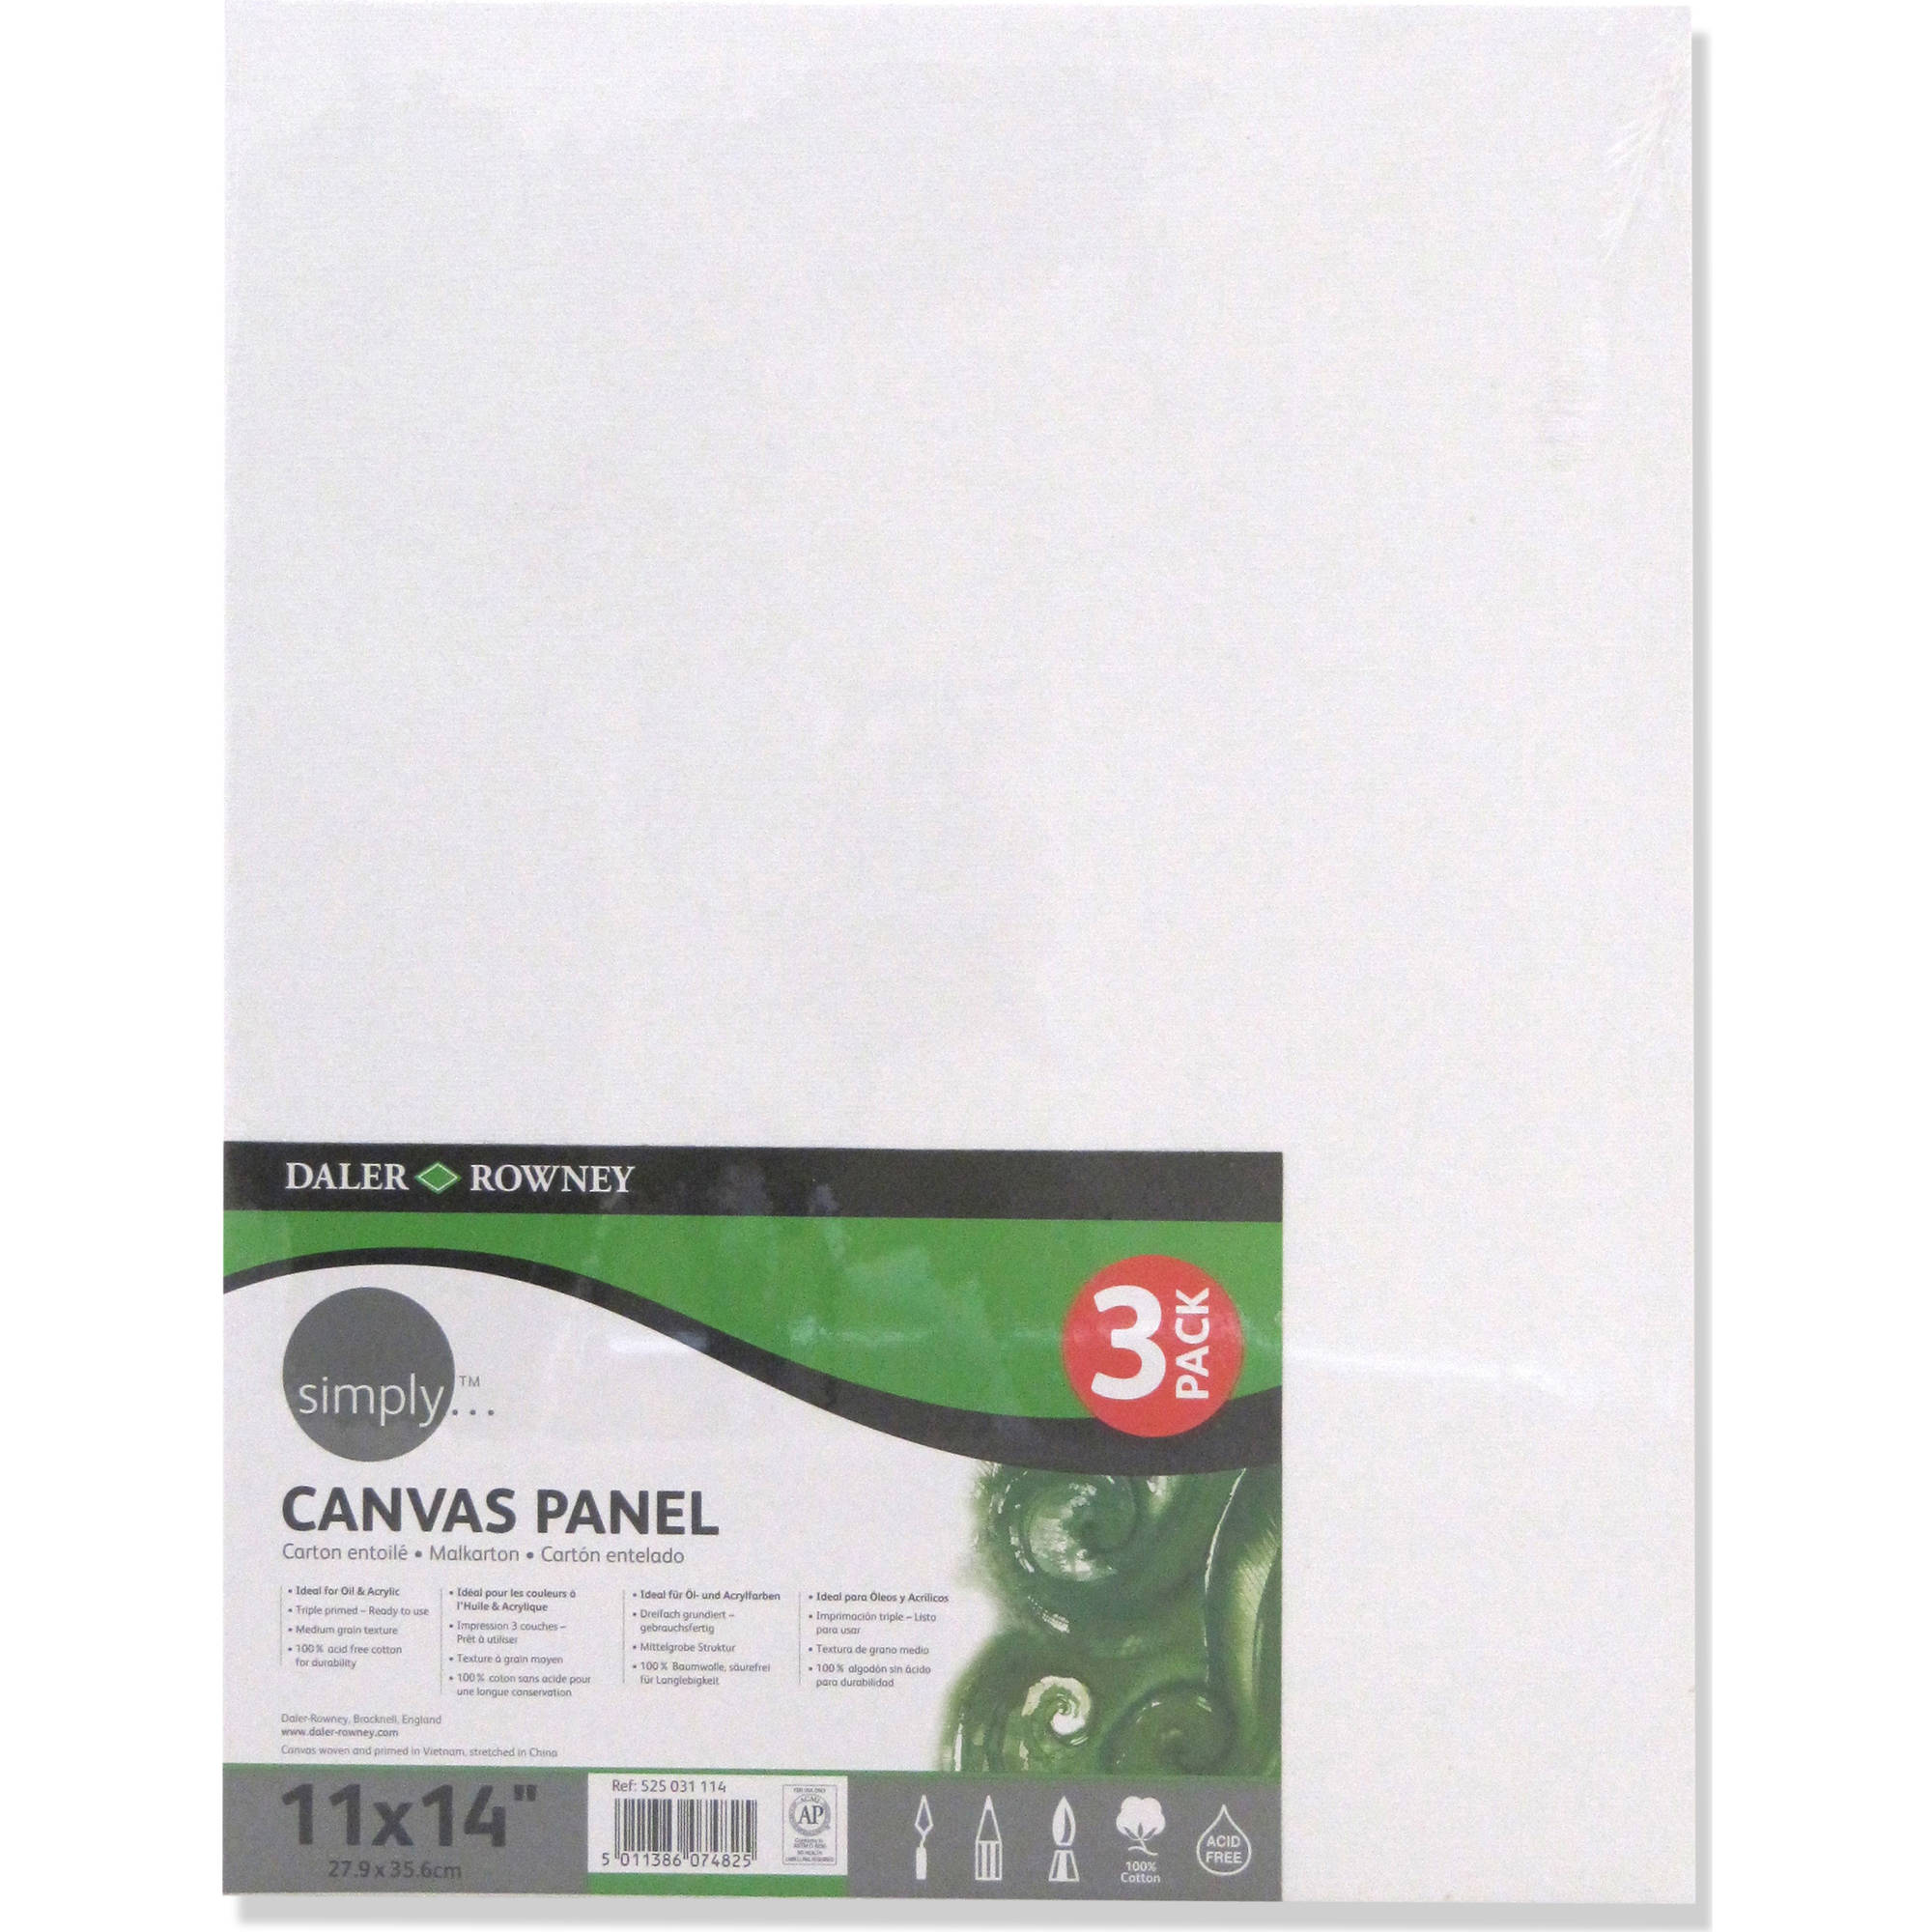 "Simply Canvas Panels, 11"" x 14"", 3 pk"